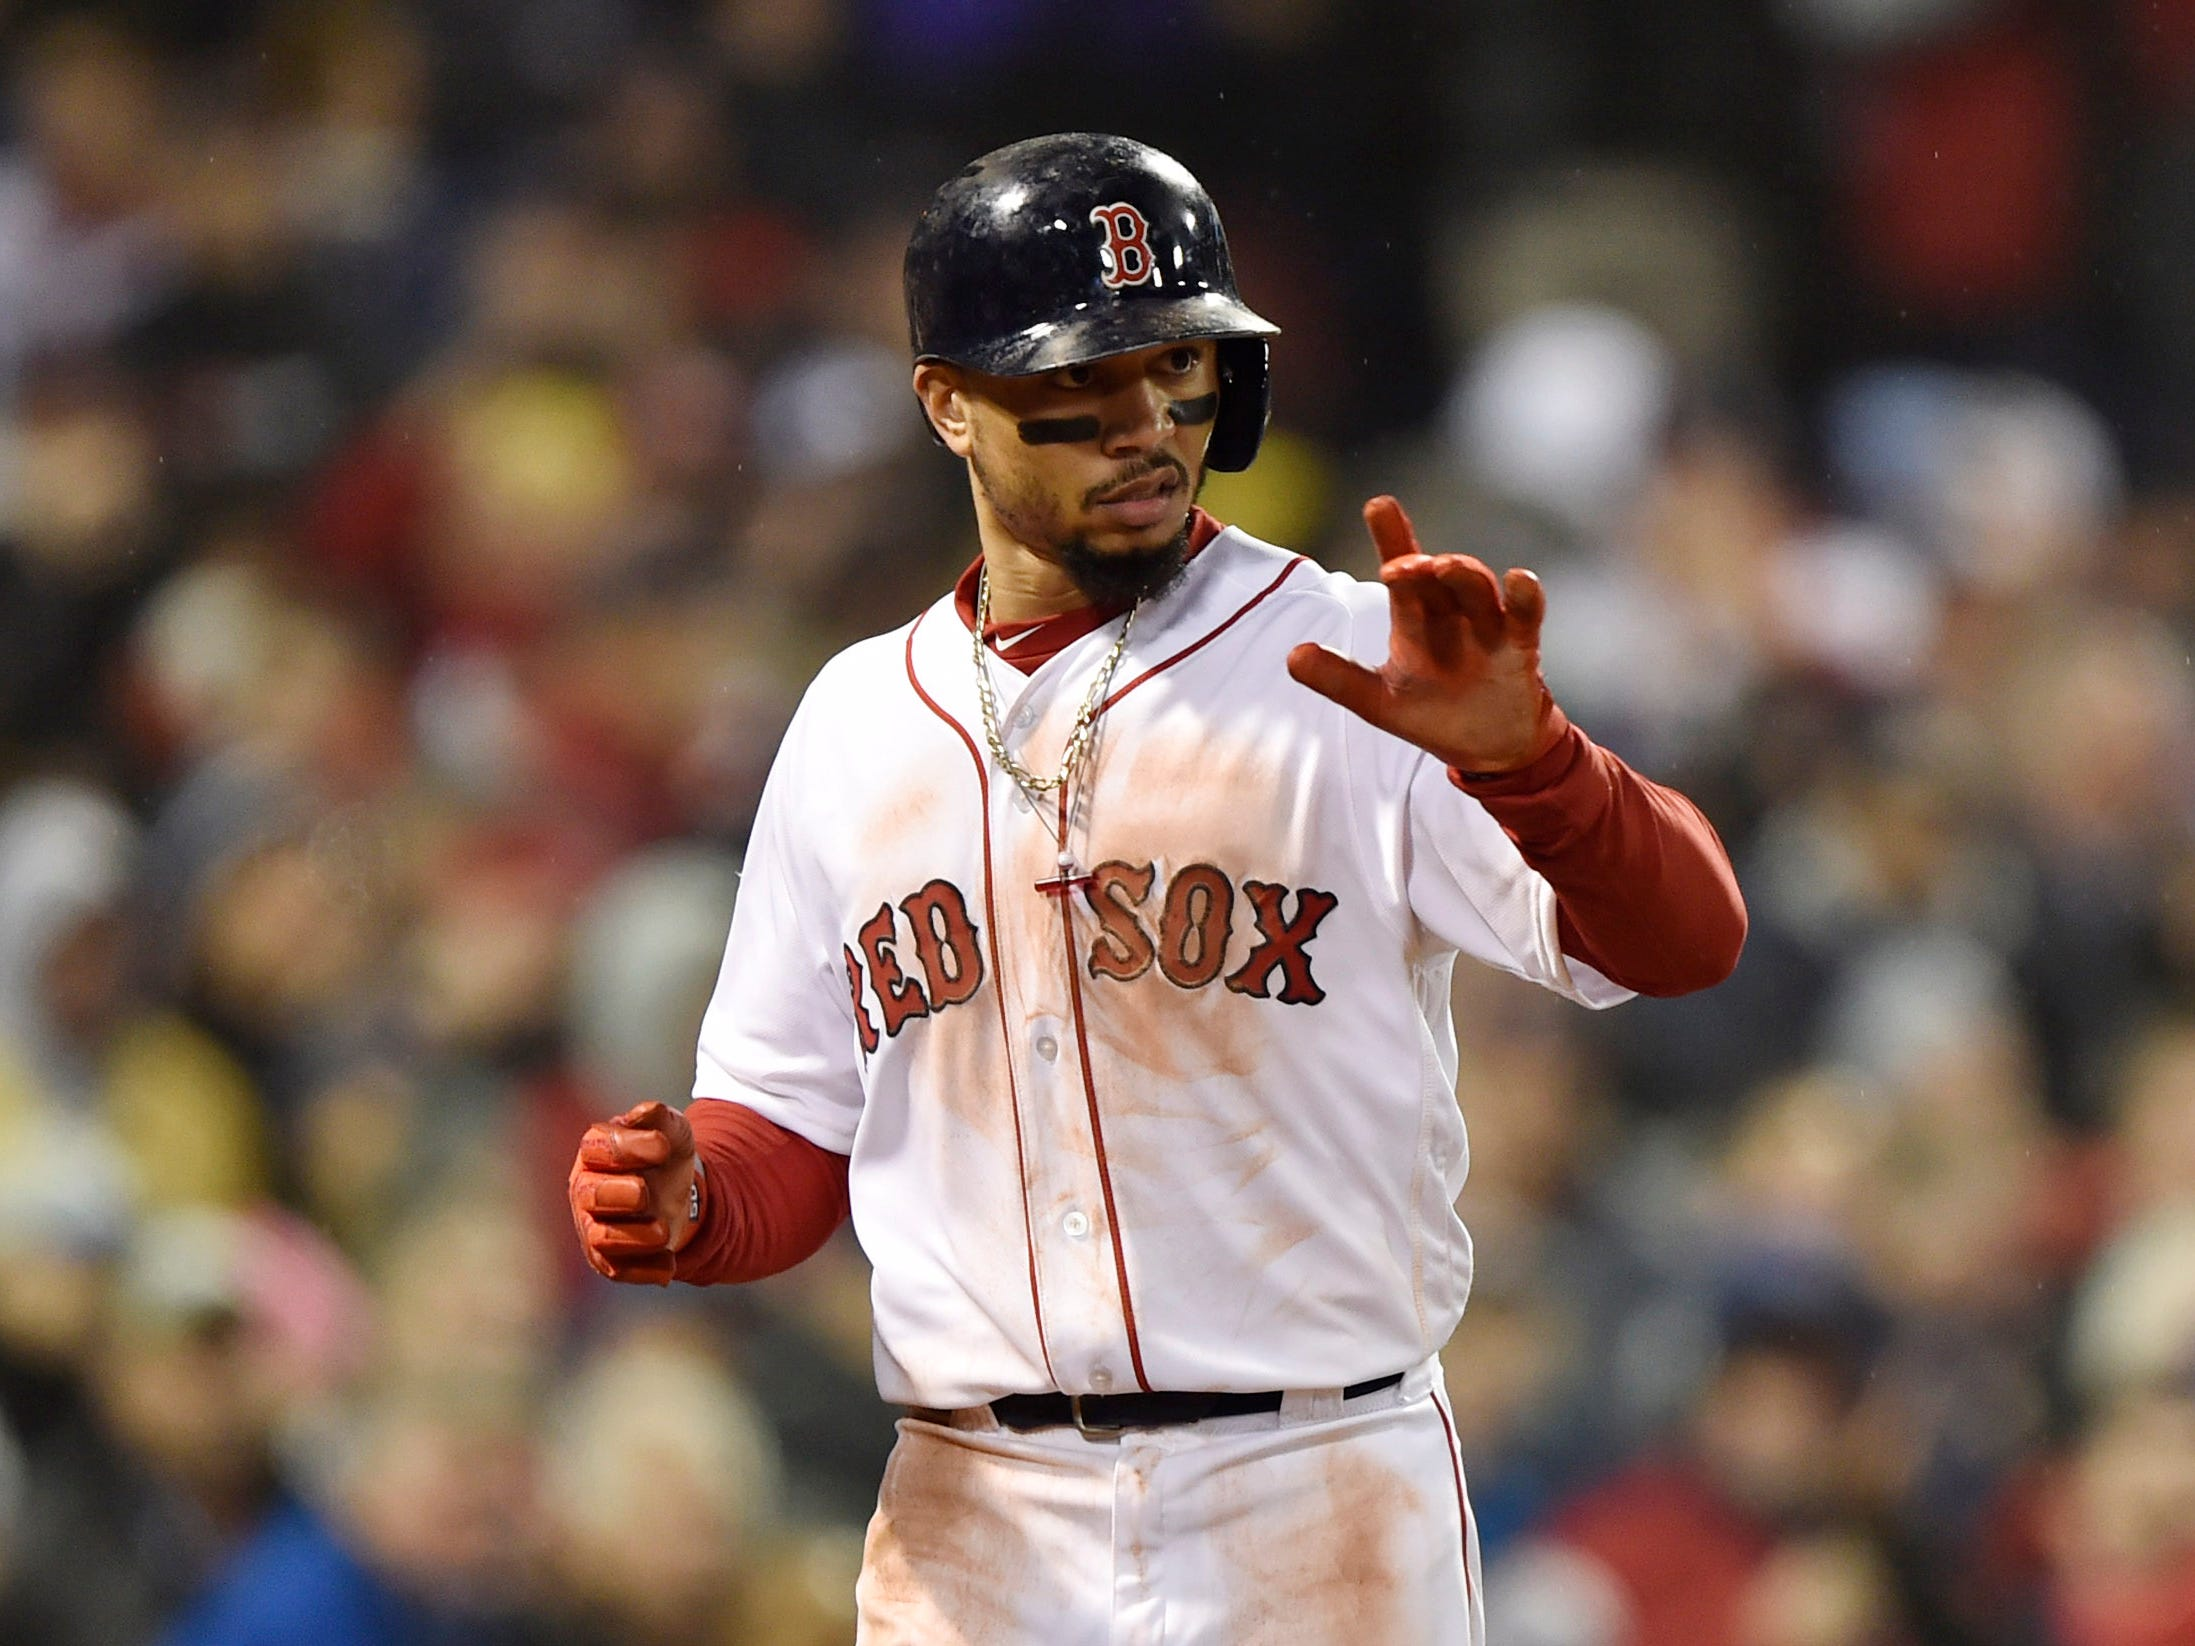 Game 1 at Fenway Park: Mookie Betts reacts after scoring in the fifth.